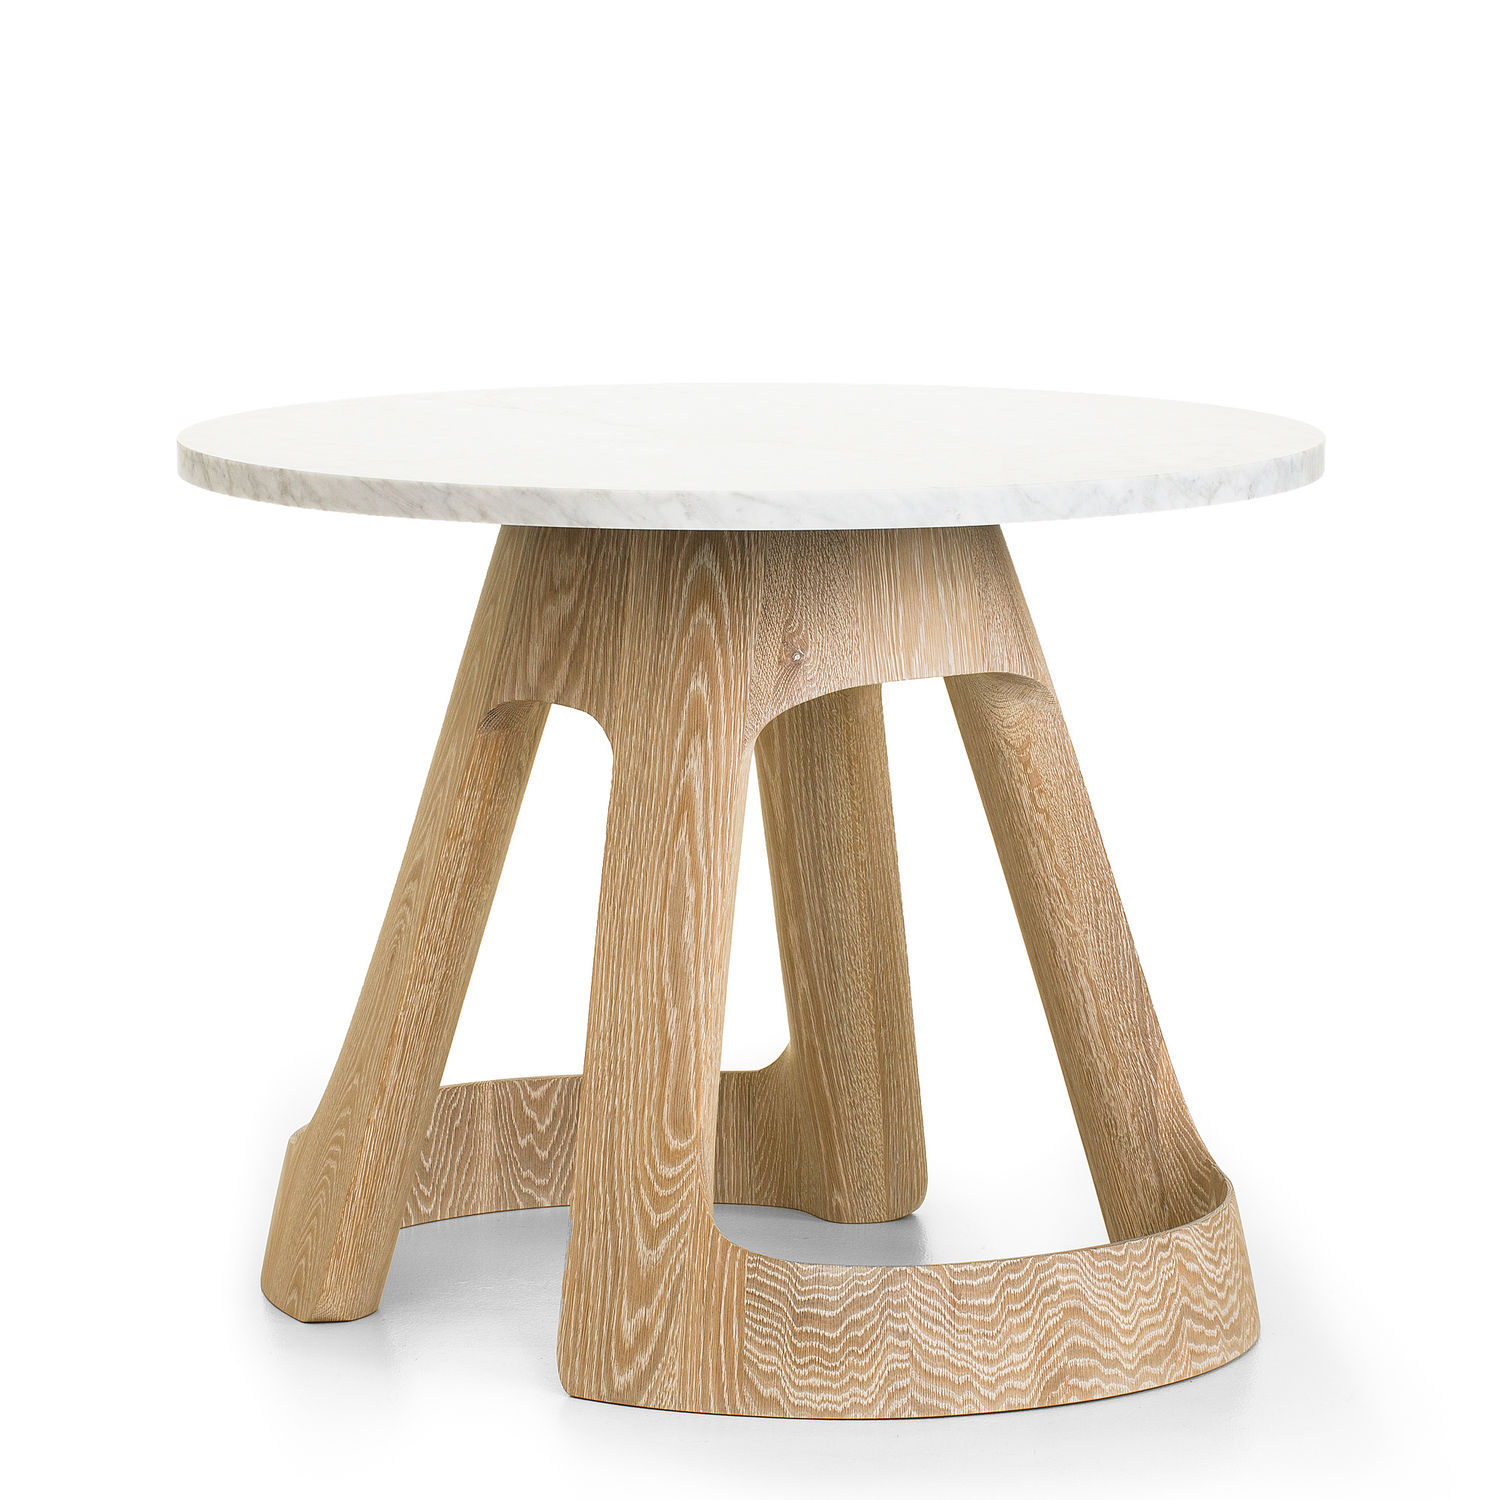 Table Contemporaine En Marbre En Chêne Blanc Ovale Polson